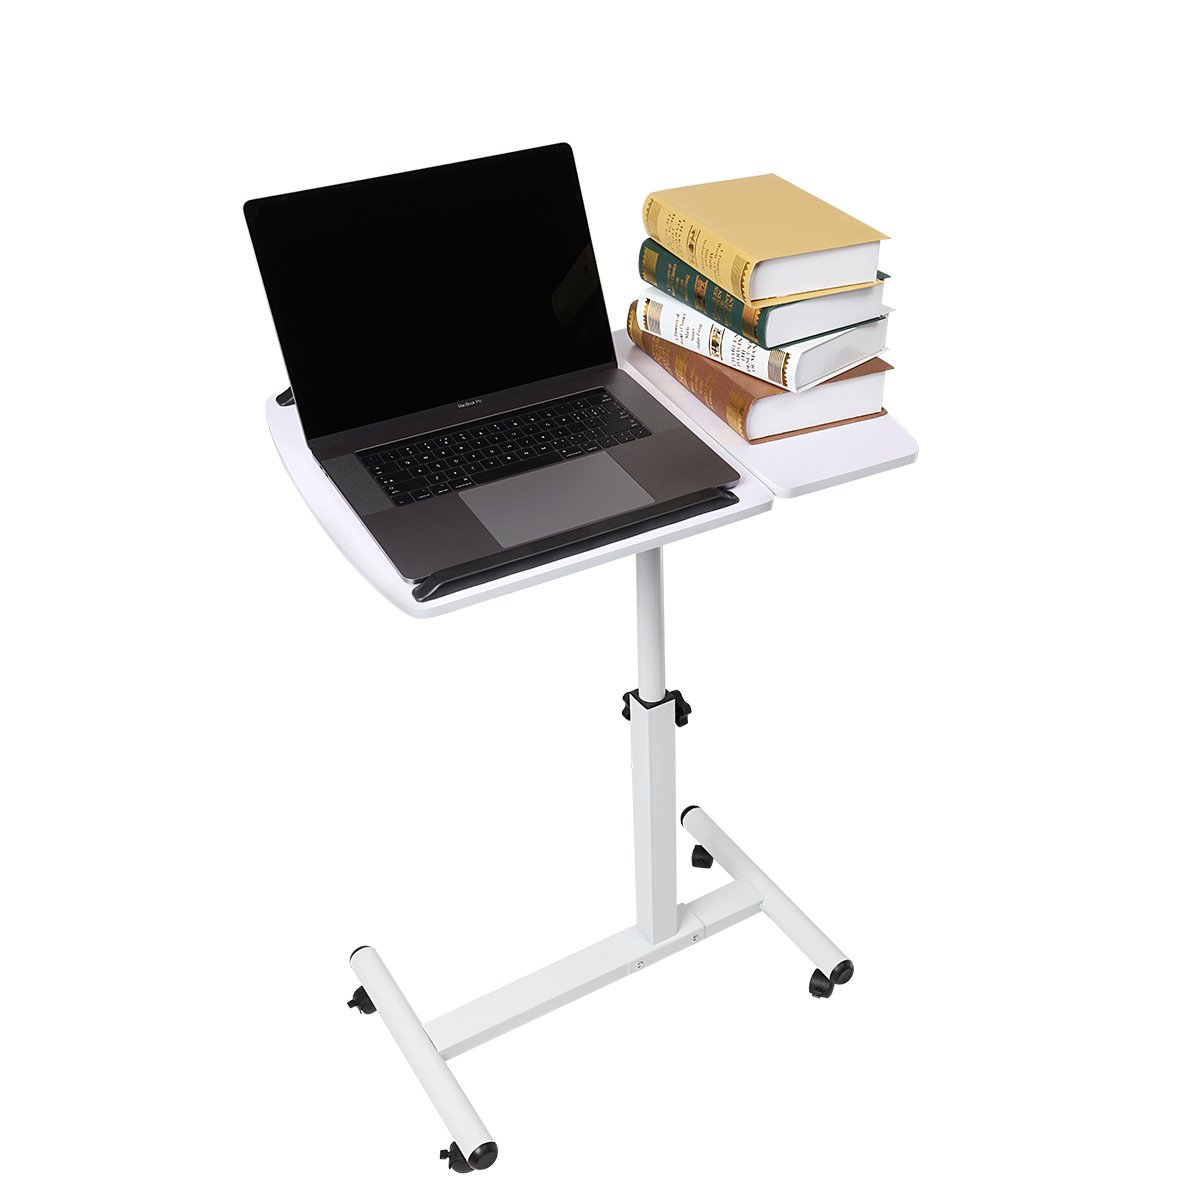 Magshion Shiny Lavender Laptop Desk Medical Adjustable Height Overbed Table Multi-purpose Portable Computer Desk with Wheels